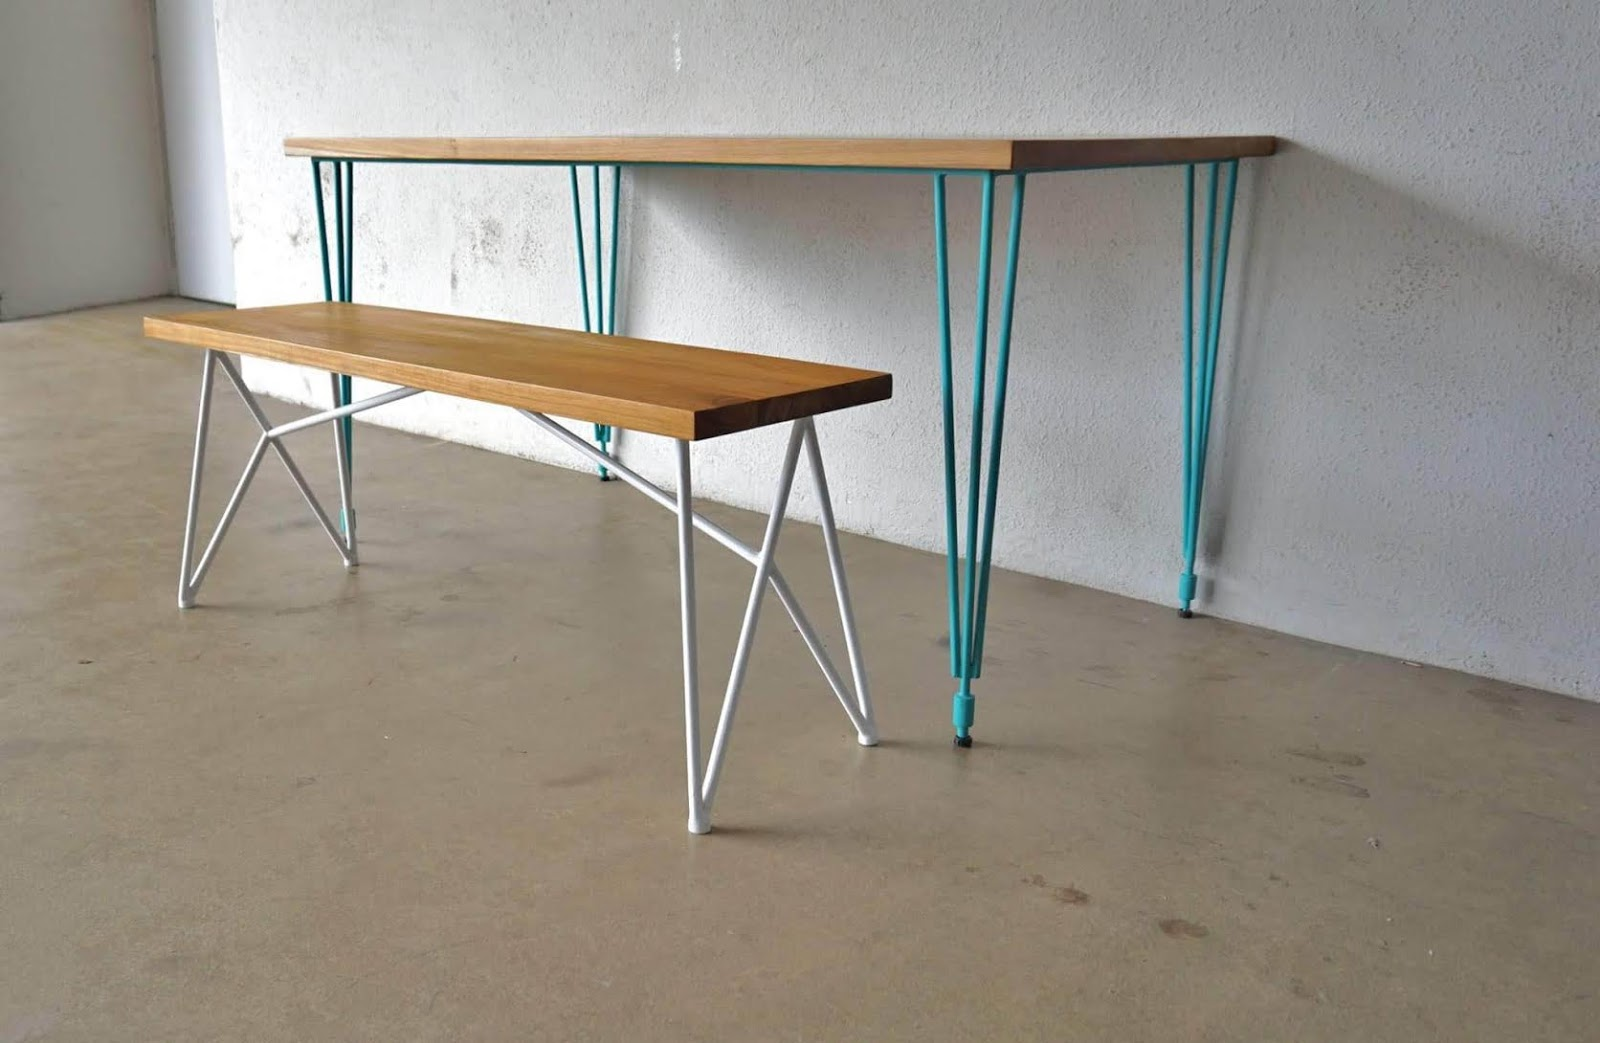 dining table with 3 pin legs in turquoise blue and an interesting